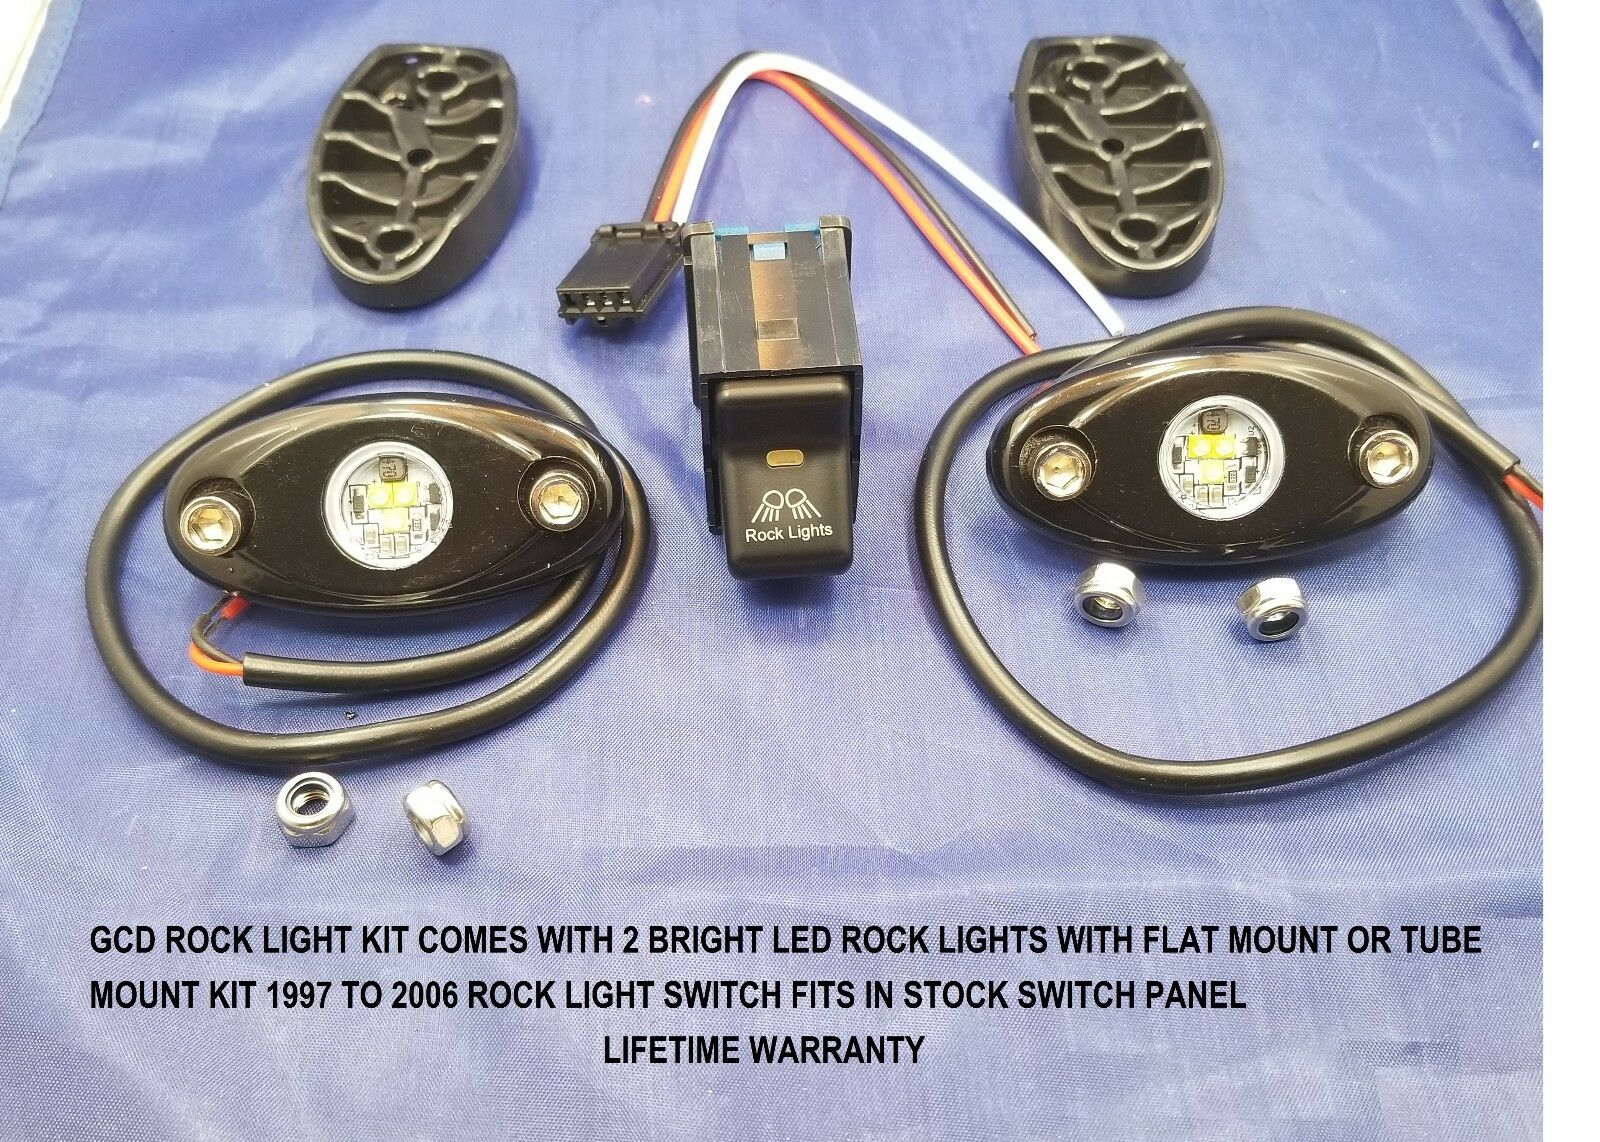 Jeep Tj Wrangler 1997 Rock Light Switch Kit And Led Lights New Switches Item For Sale